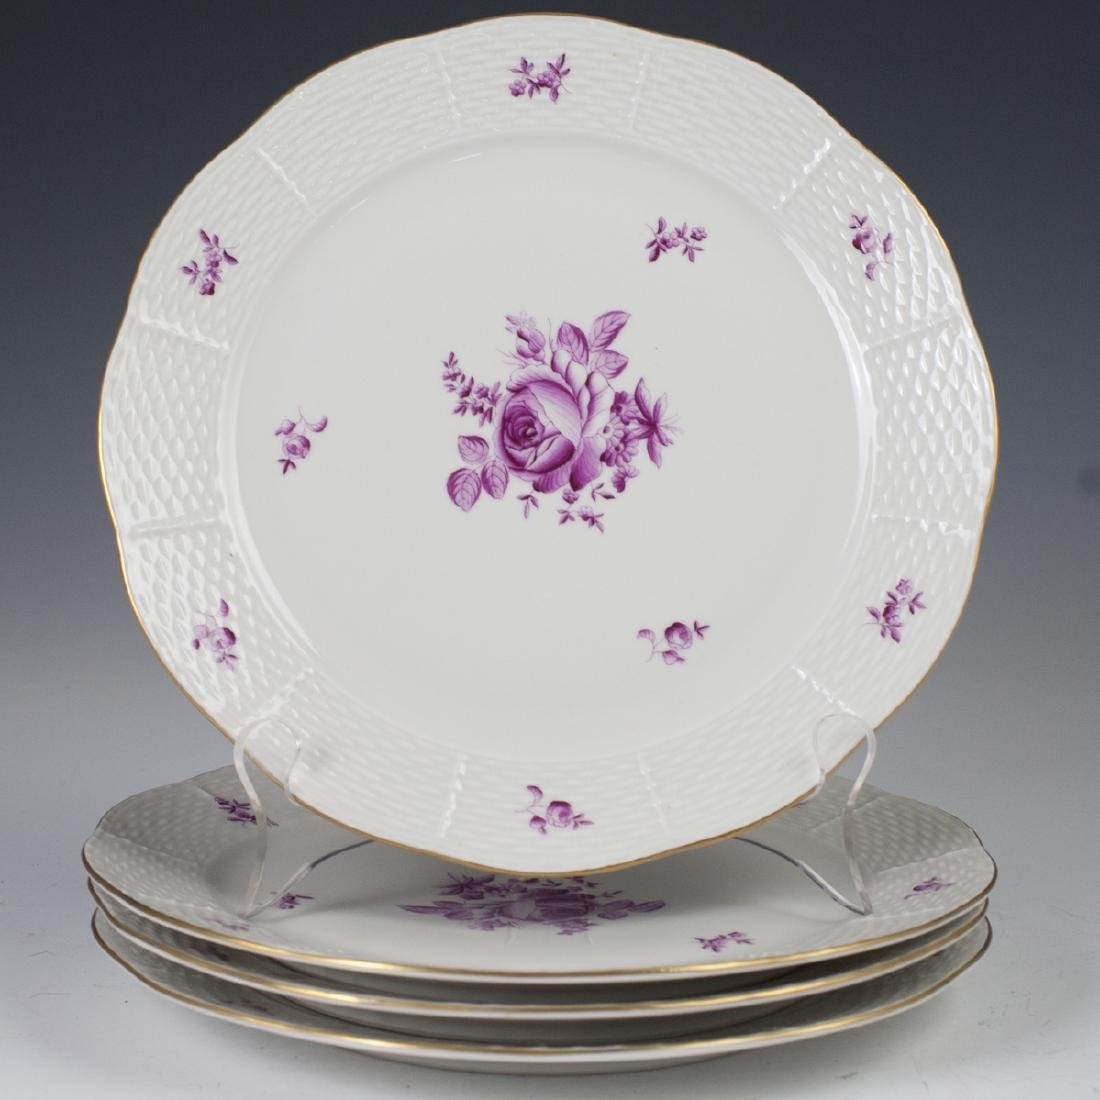 Herend Porcelain Dinner Plates